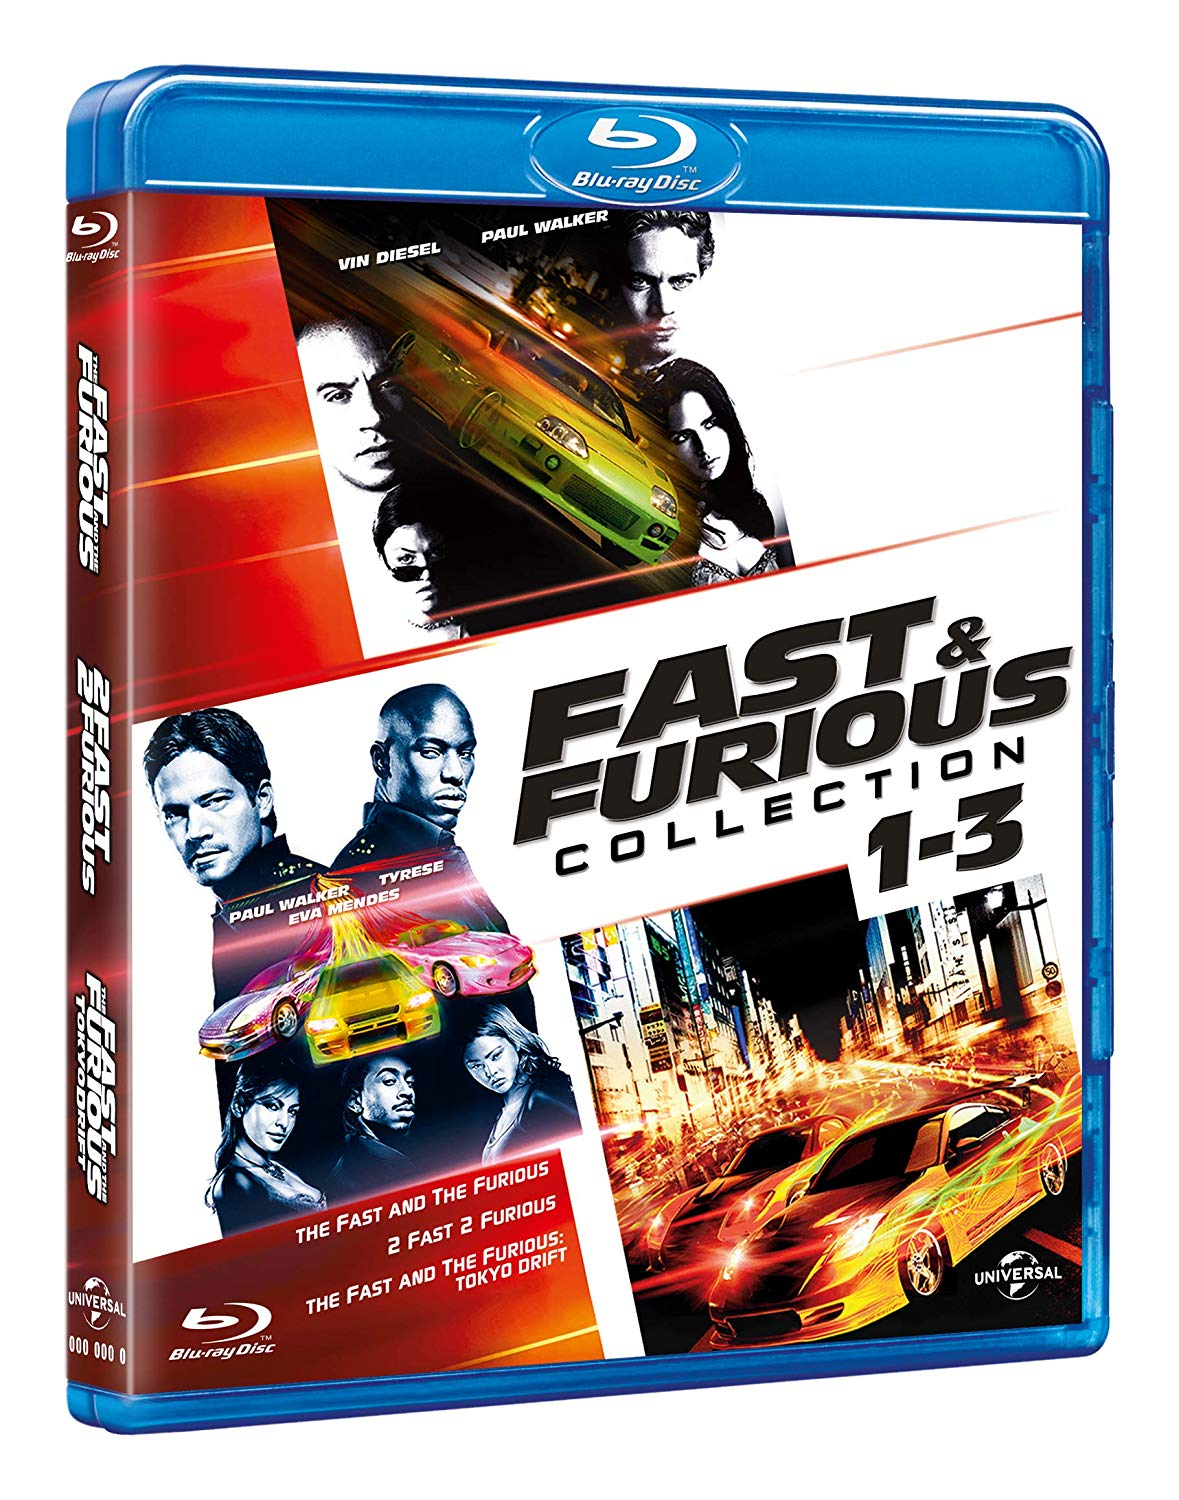 COF.FAST & FURIOUS TUNING COLLECTION (3 BLU-RAY)